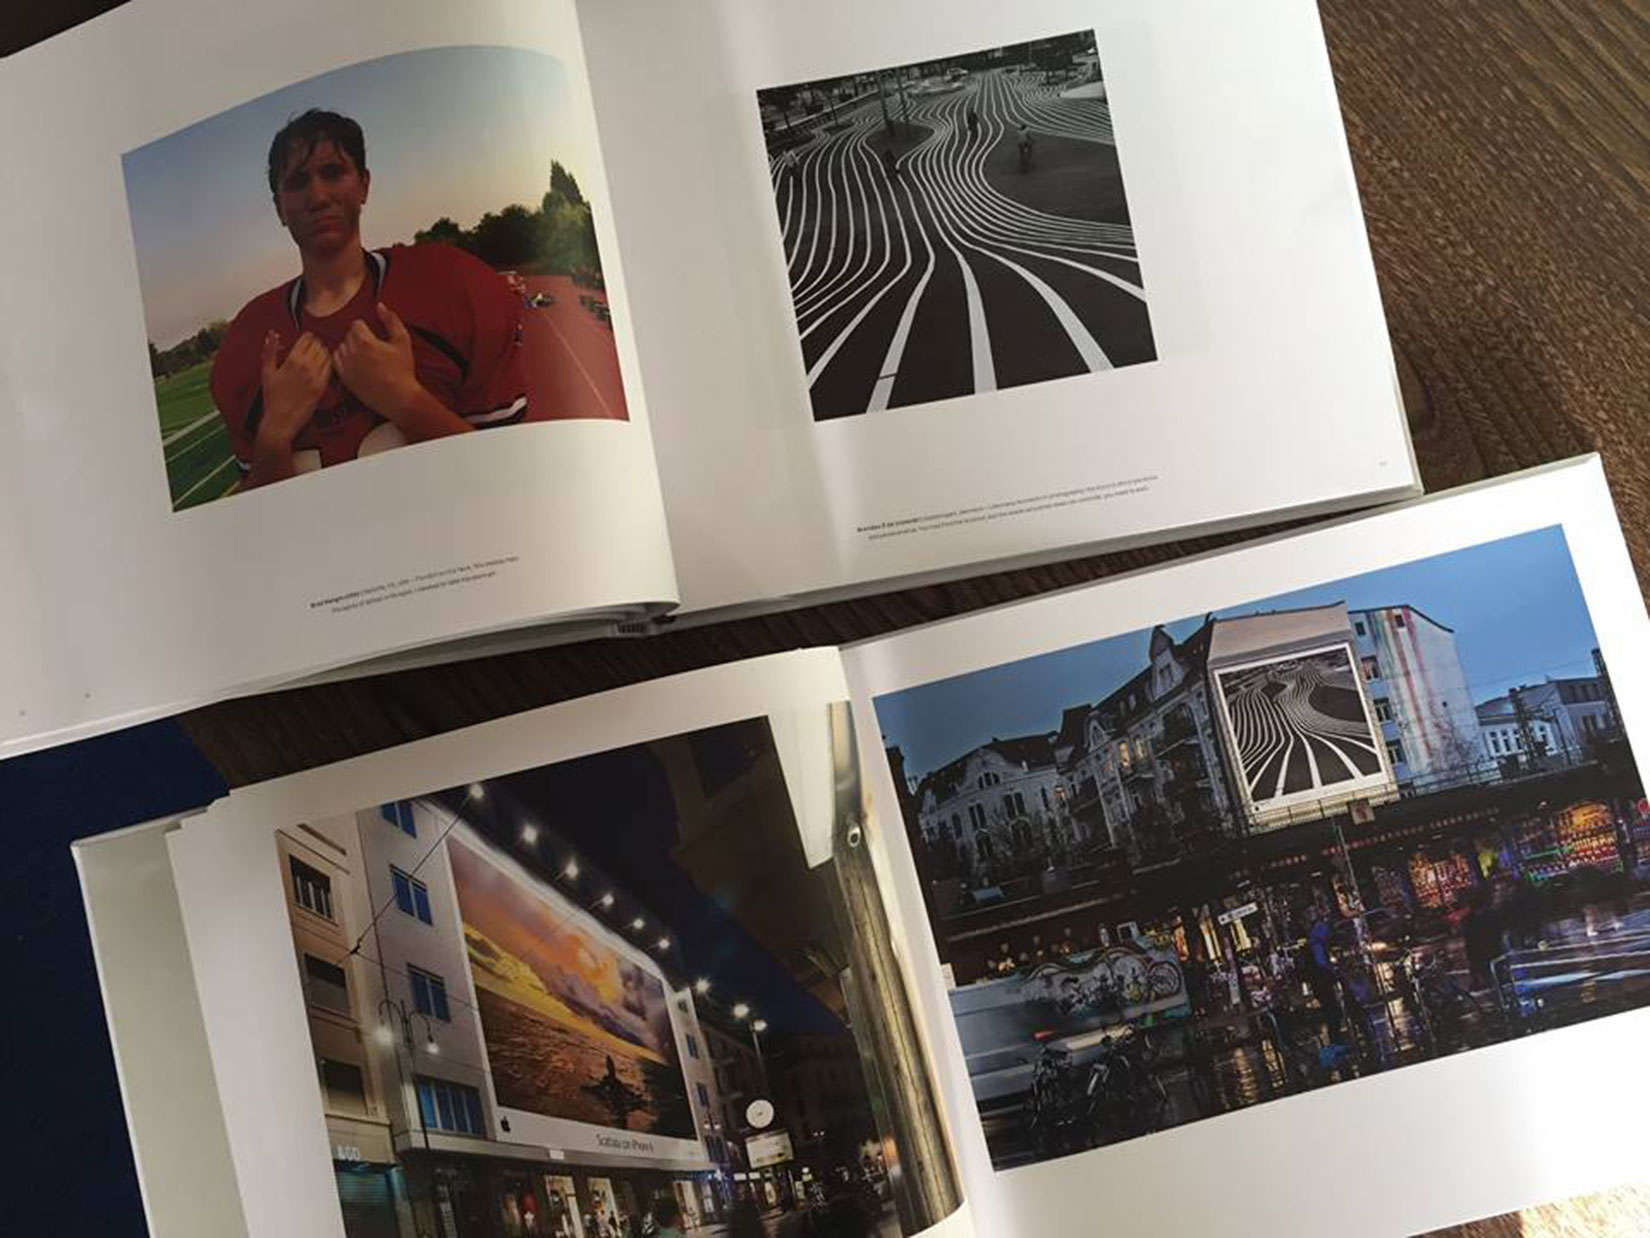 Apple surprises iPhone 6 photographers with coffee table books